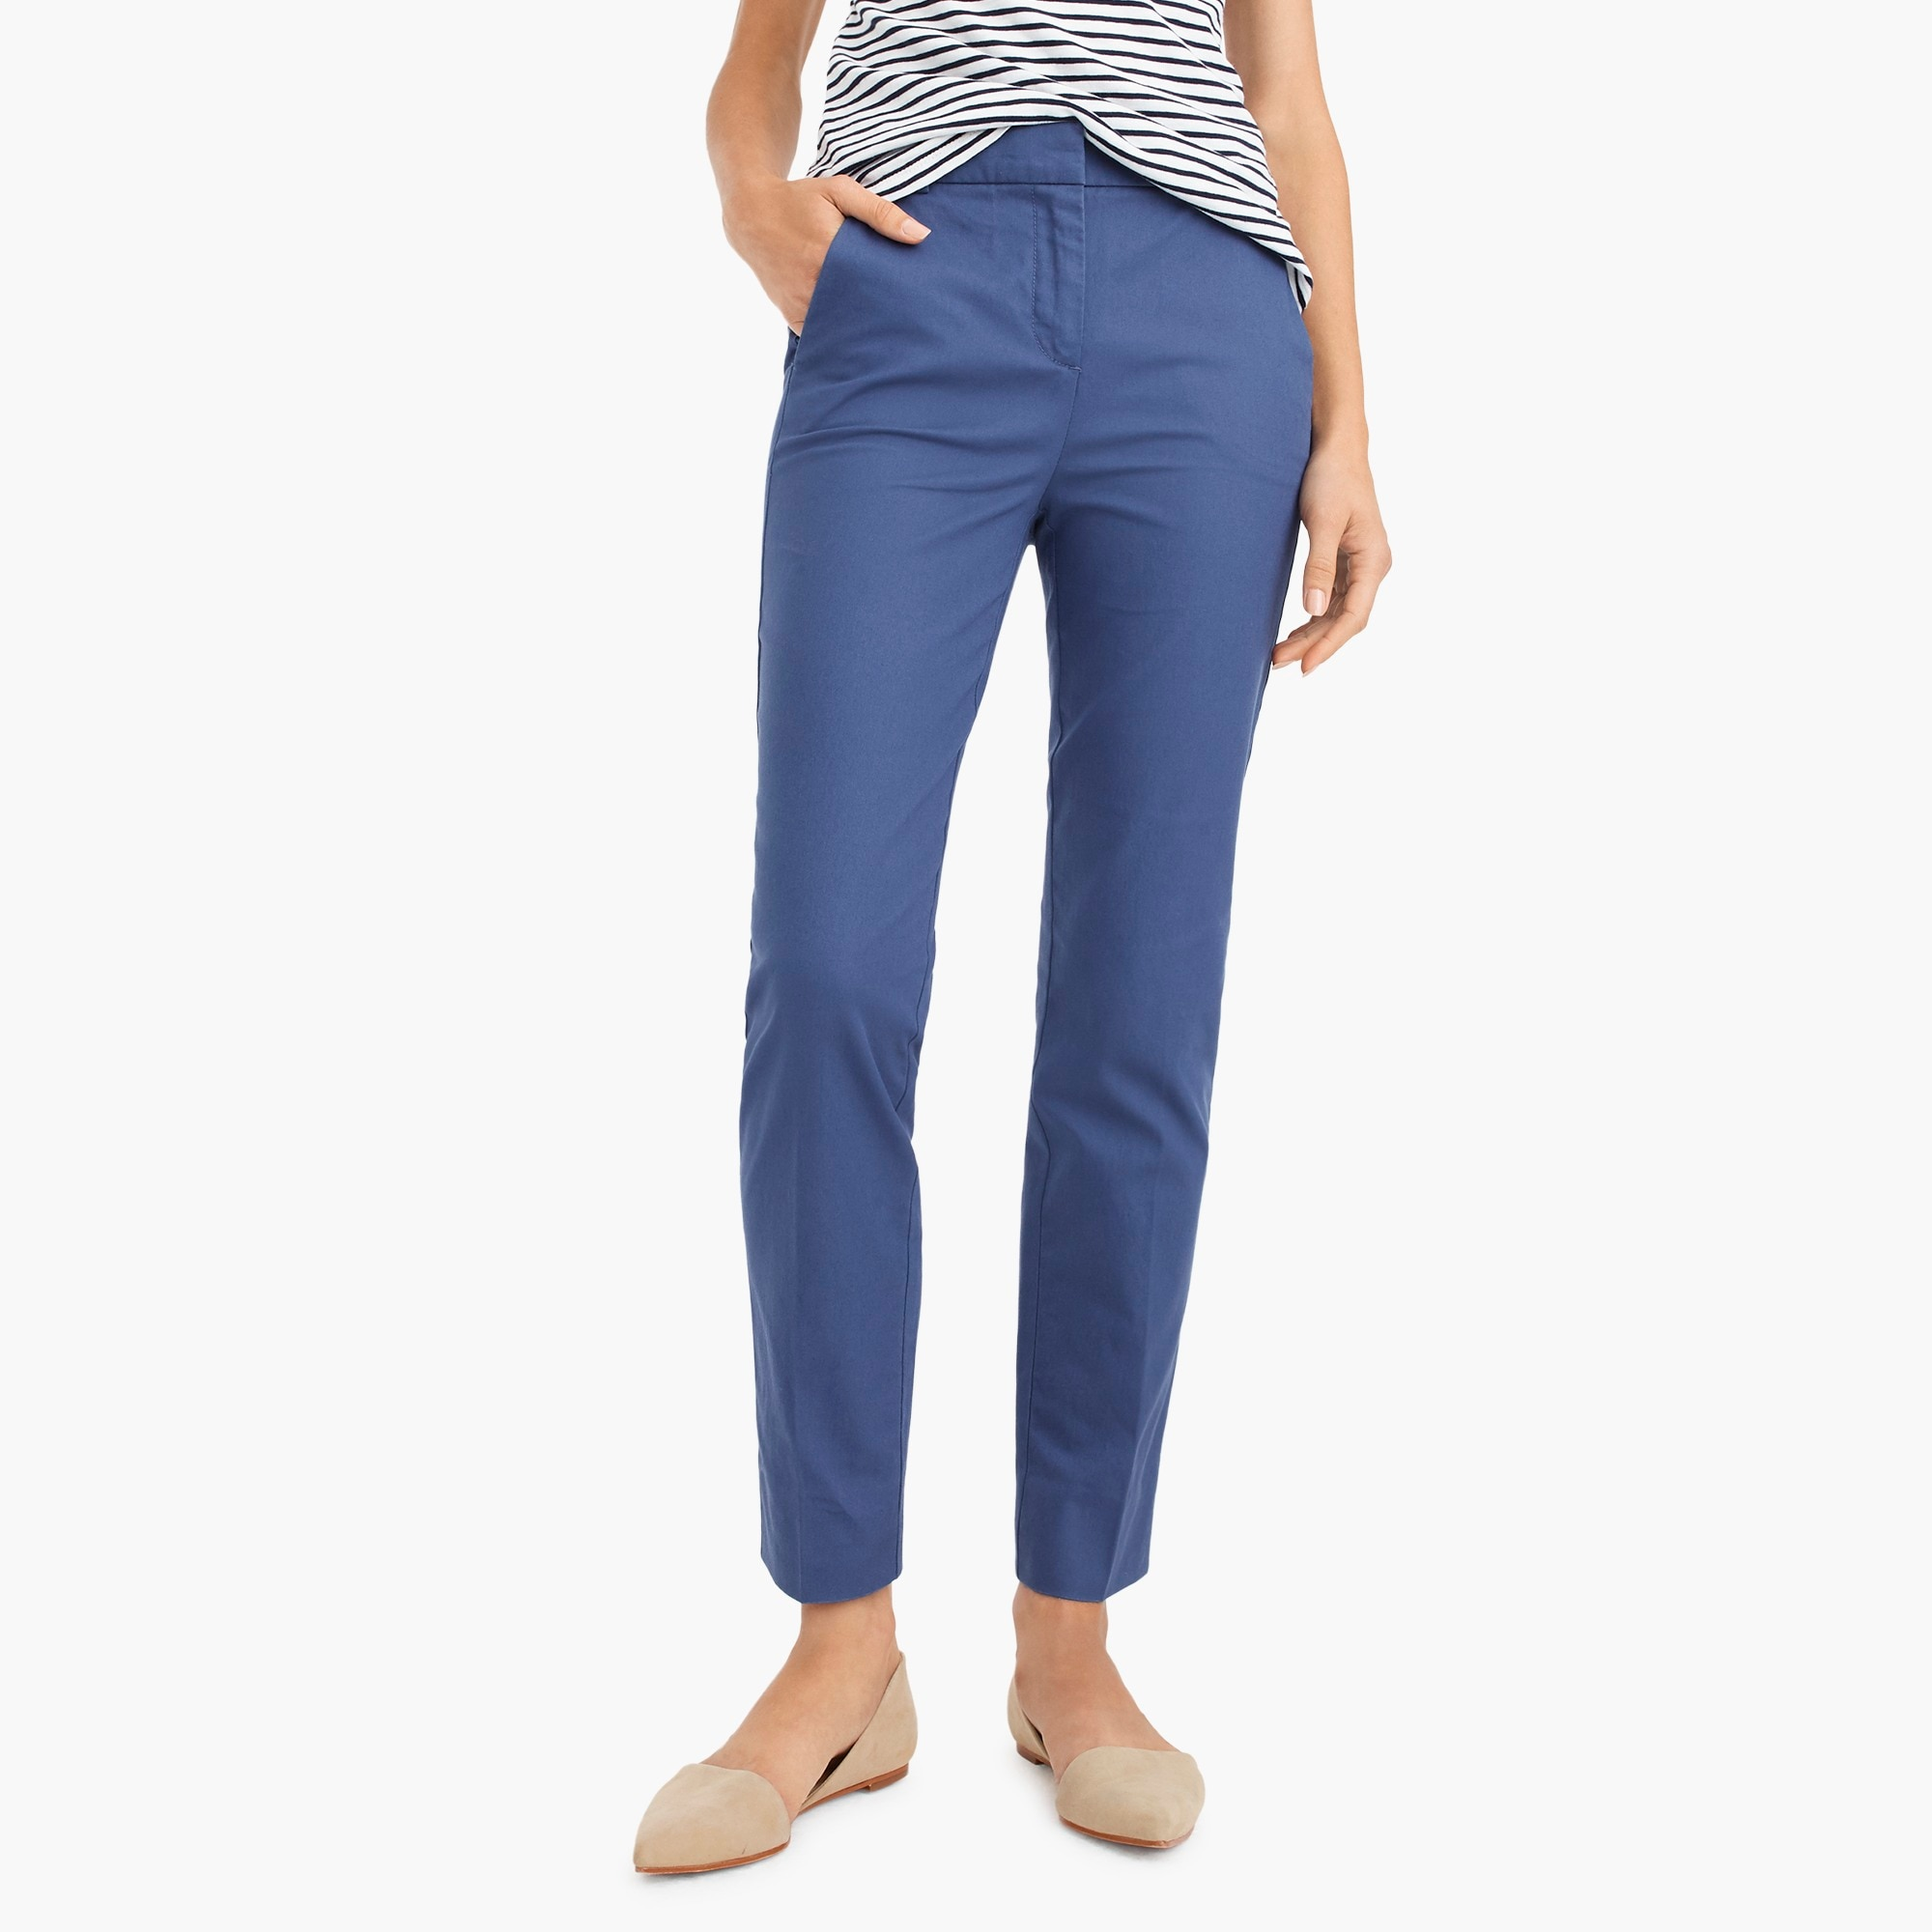 Image 1 for Petite effortless slim crop chino pant